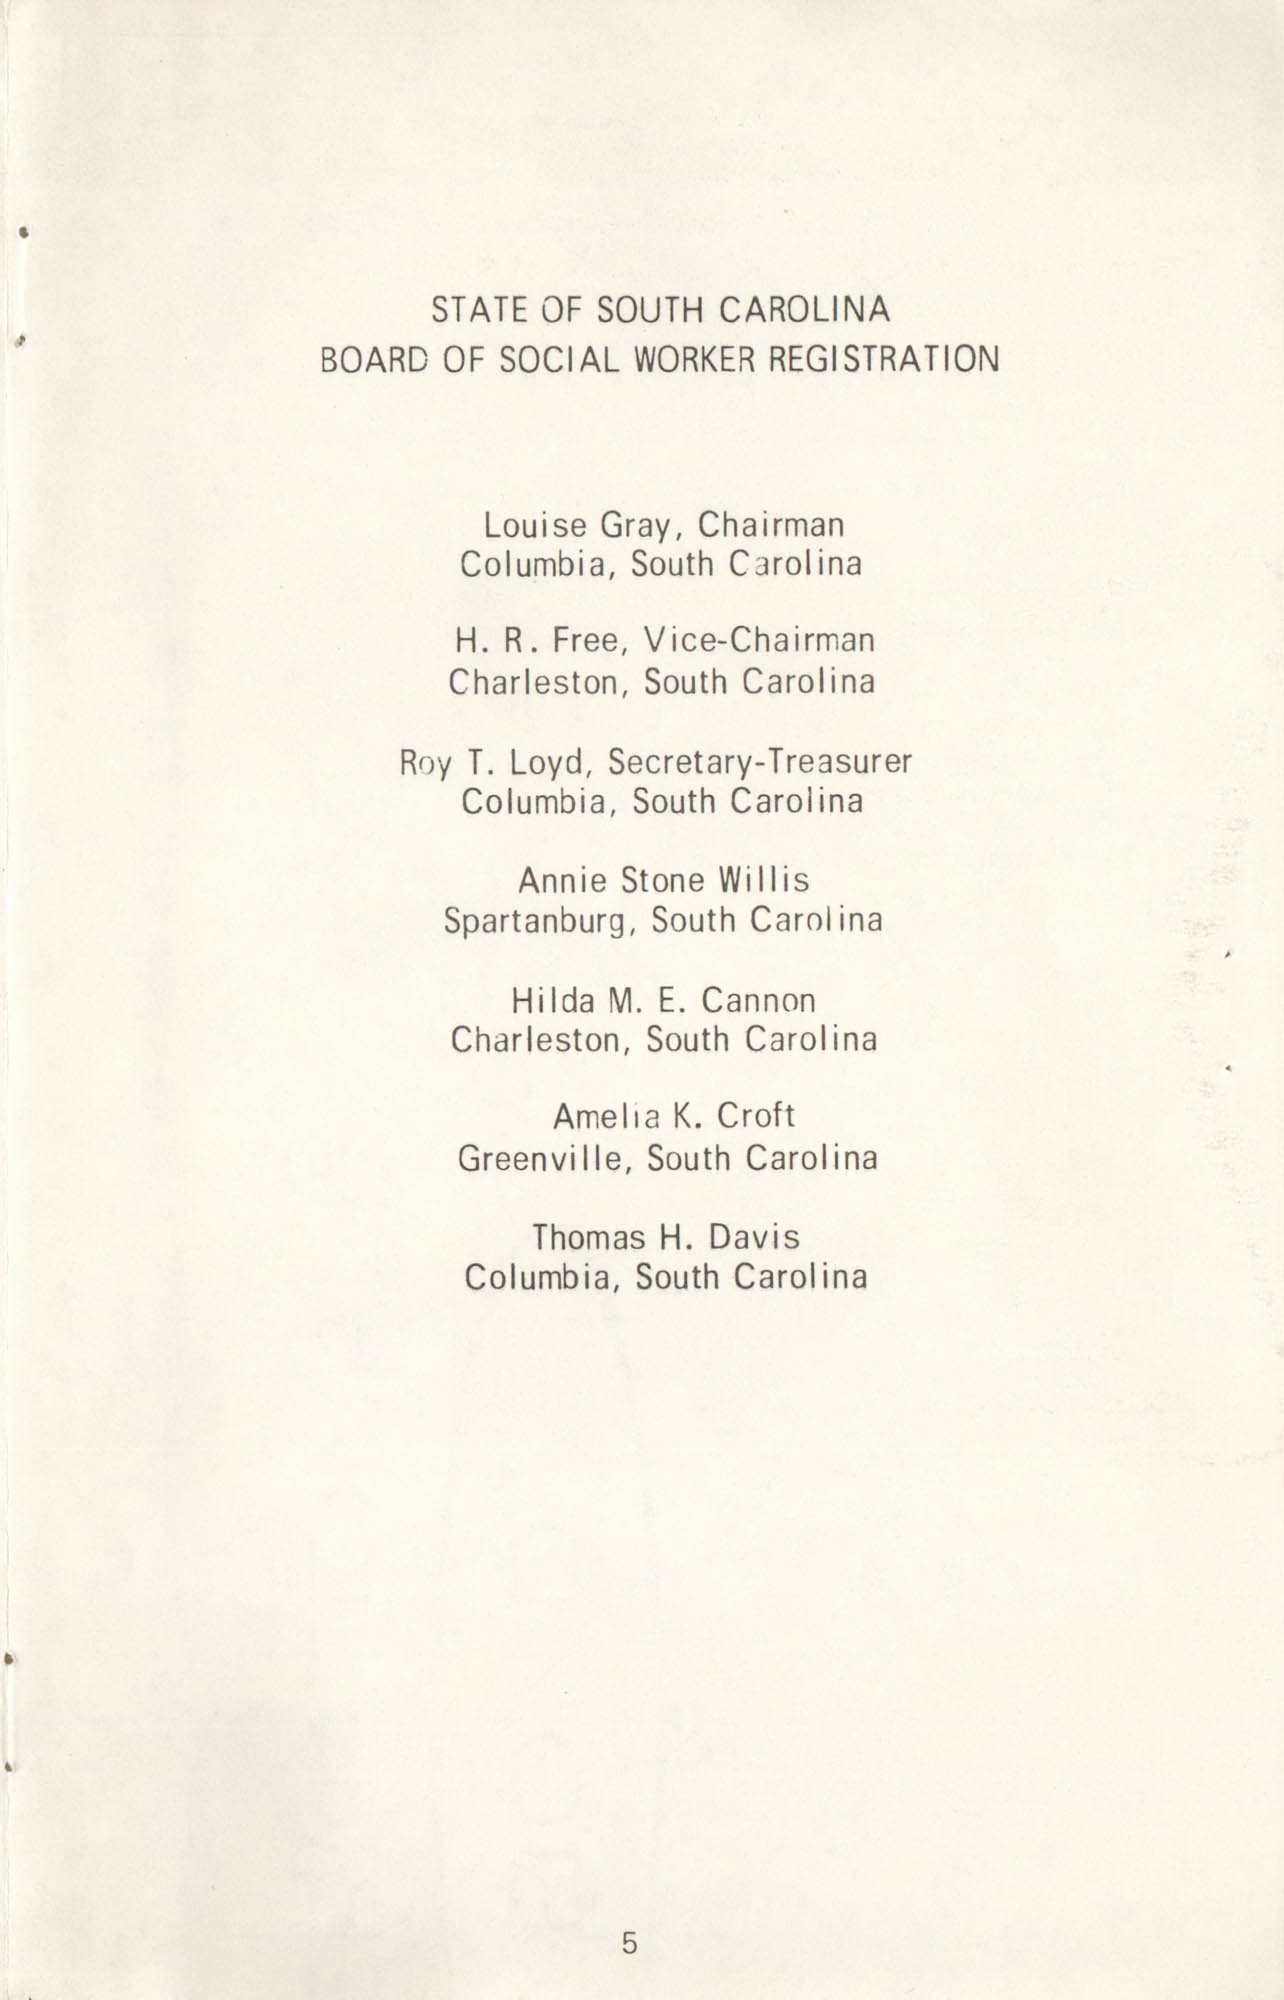 State of South Carolina Directory of Registered Social Workers, 1972, Page 5